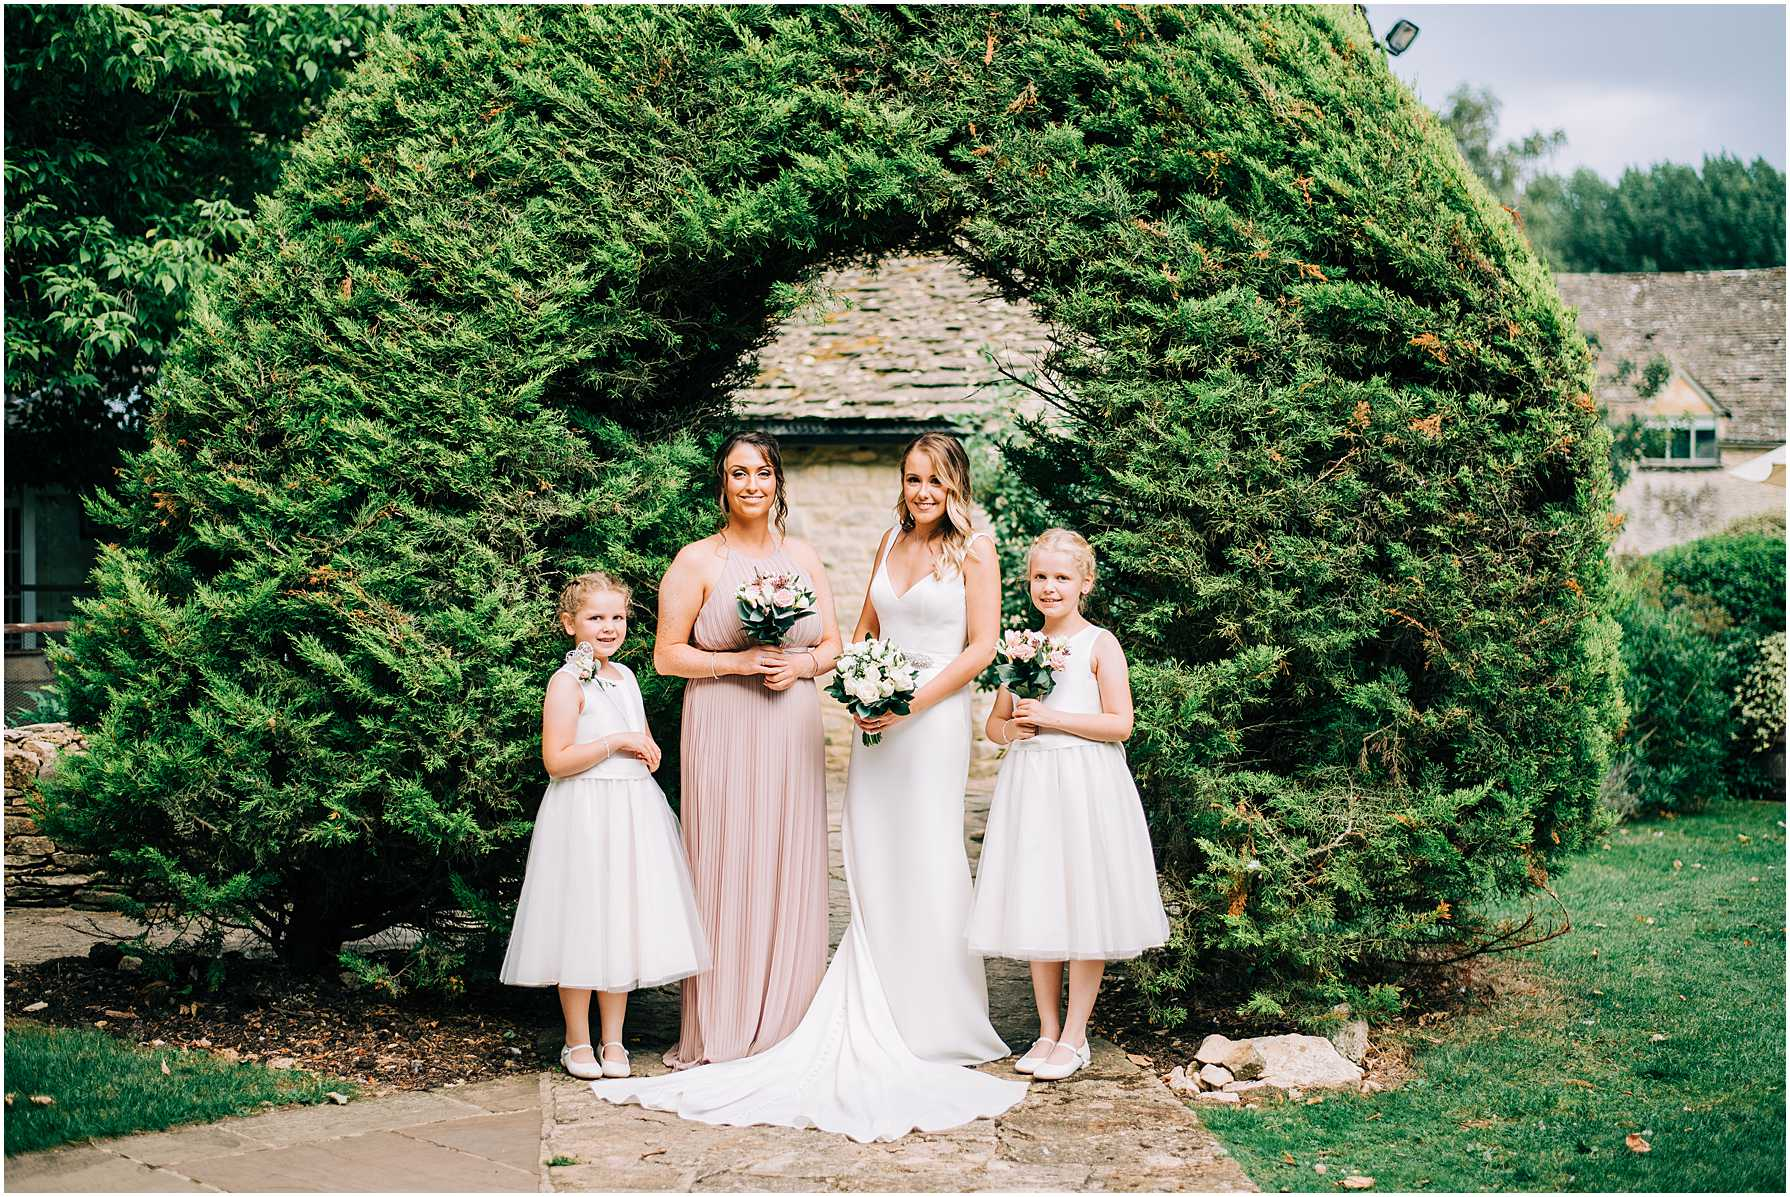 bride and bridesmaids standing in front of an arched tree